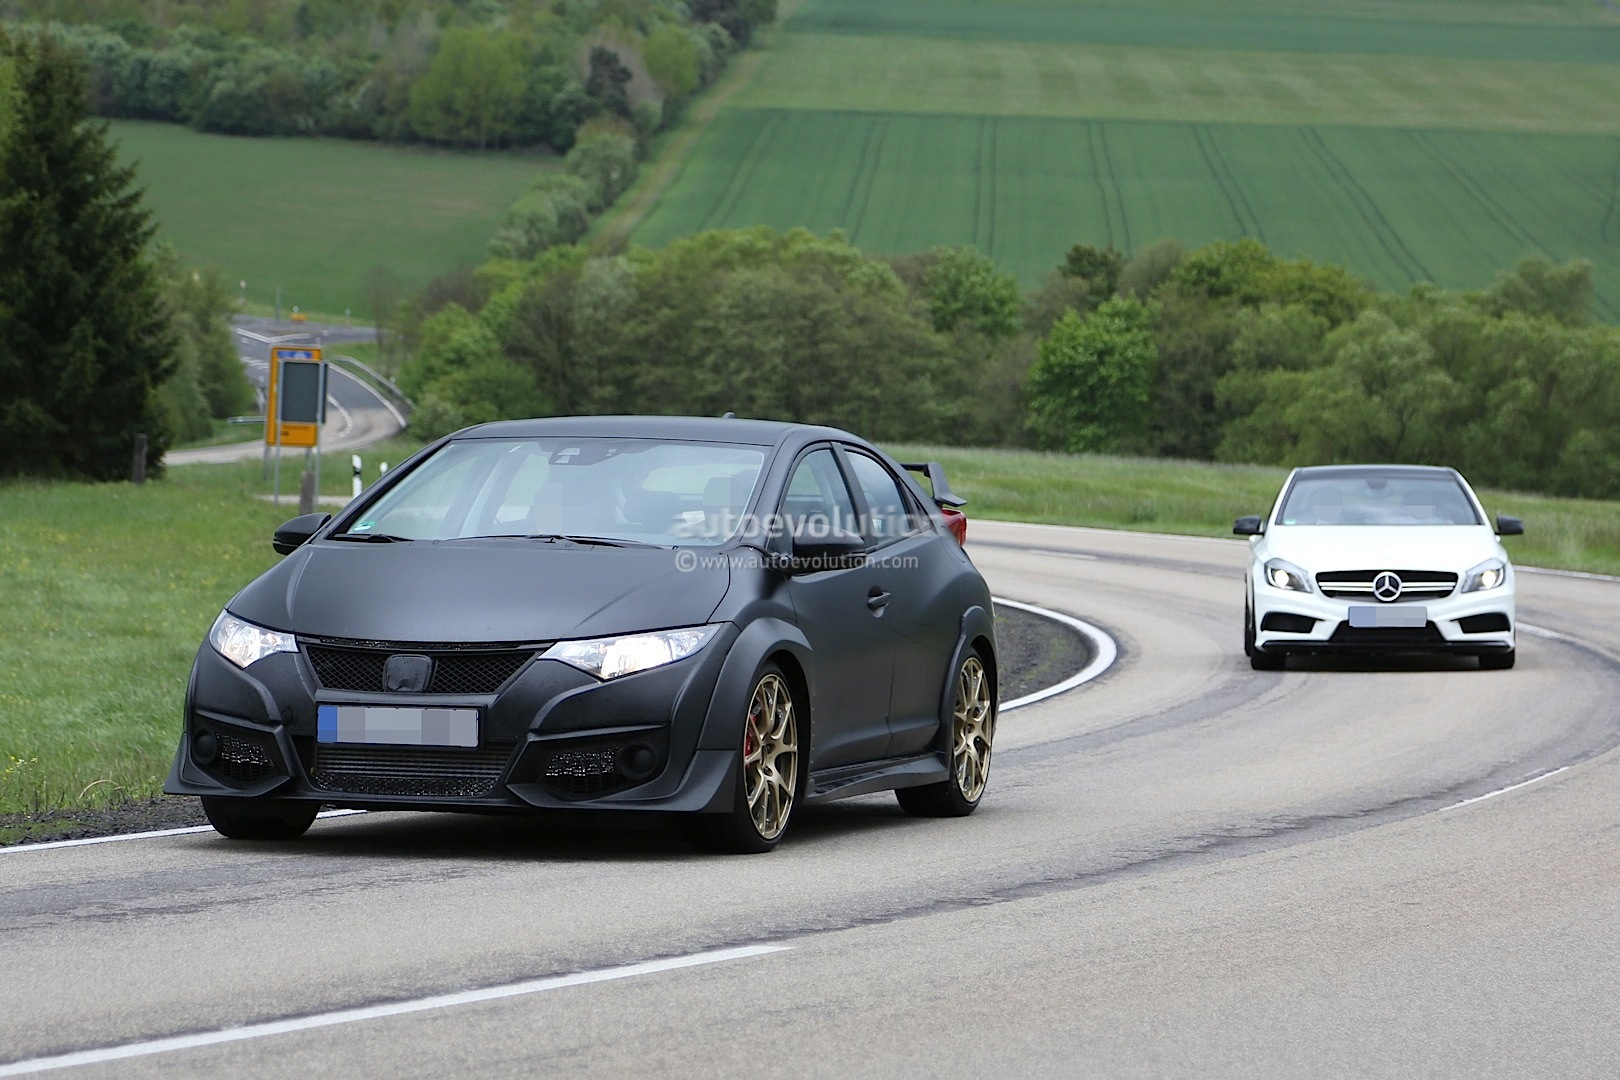 new honda civic type r spied testing against mercedes a45. Black Bedroom Furniture Sets. Home Design Ideas